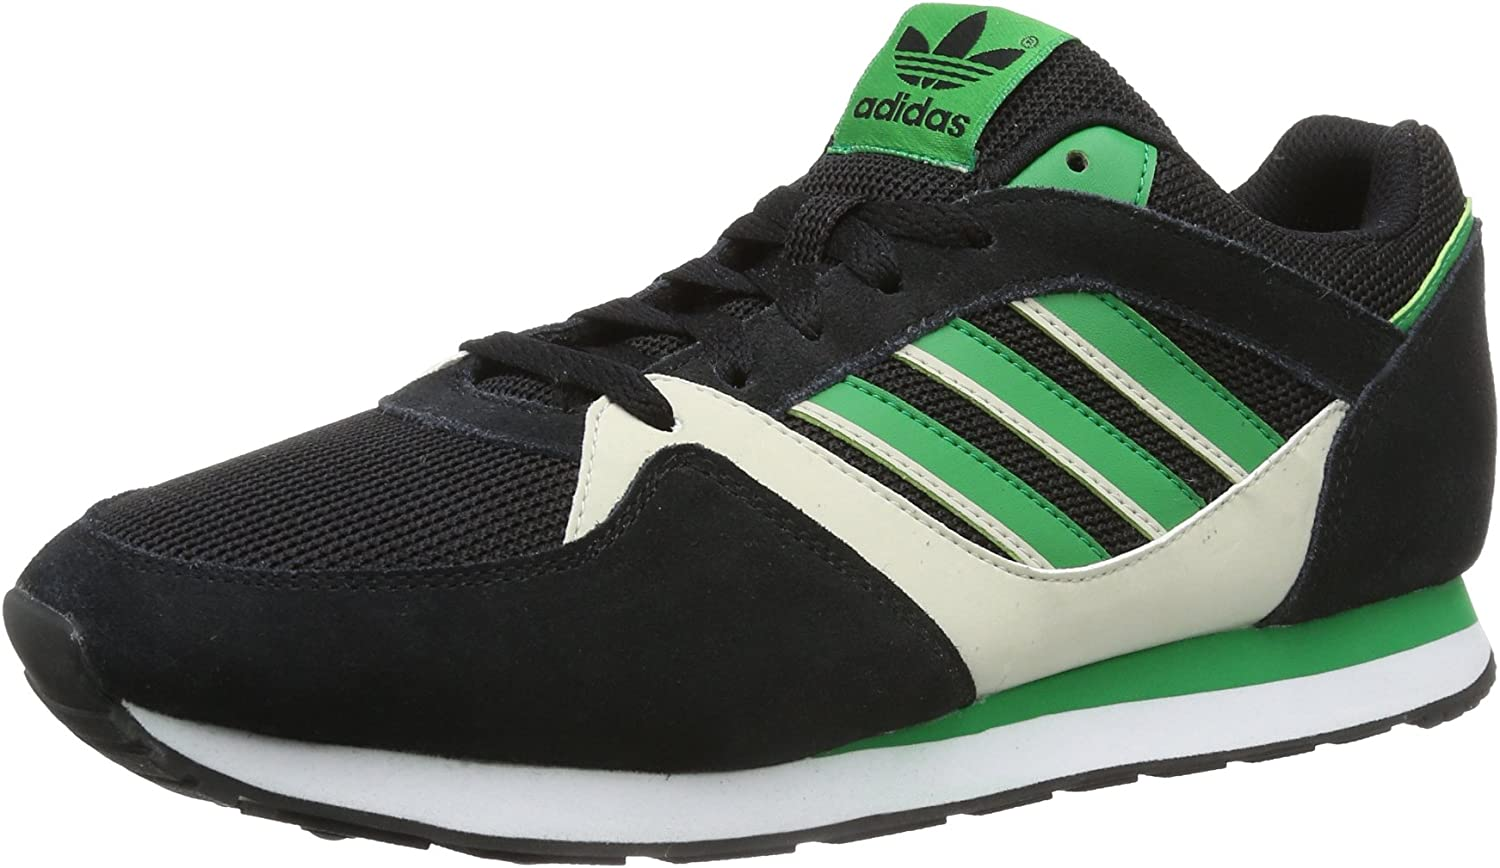 Adidas ZX 100-1, Men's Trainers